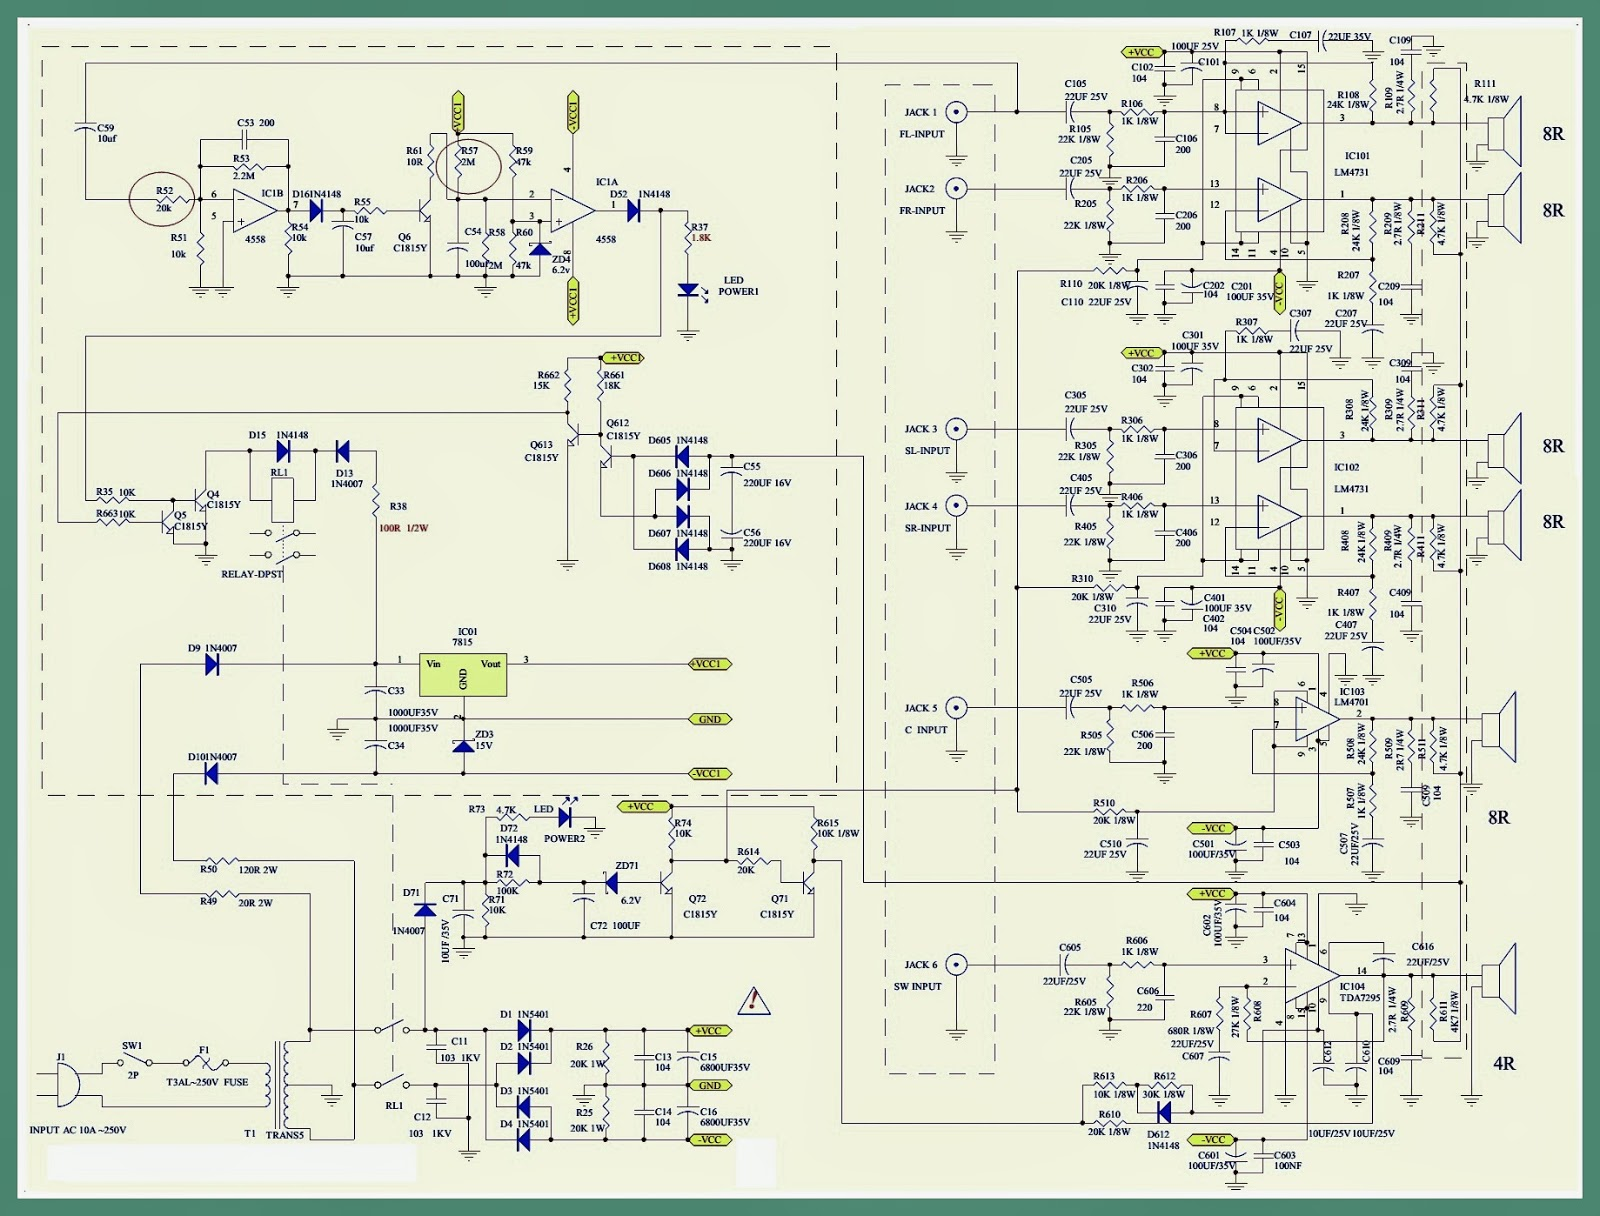 Pre Amp Circuits Diagrams Free Wiring Diagram For You Vintage Guitar Schematics Get Image About A6652 Microlab Computer Speaker System Schematic Preamplifier Circuit Preamp